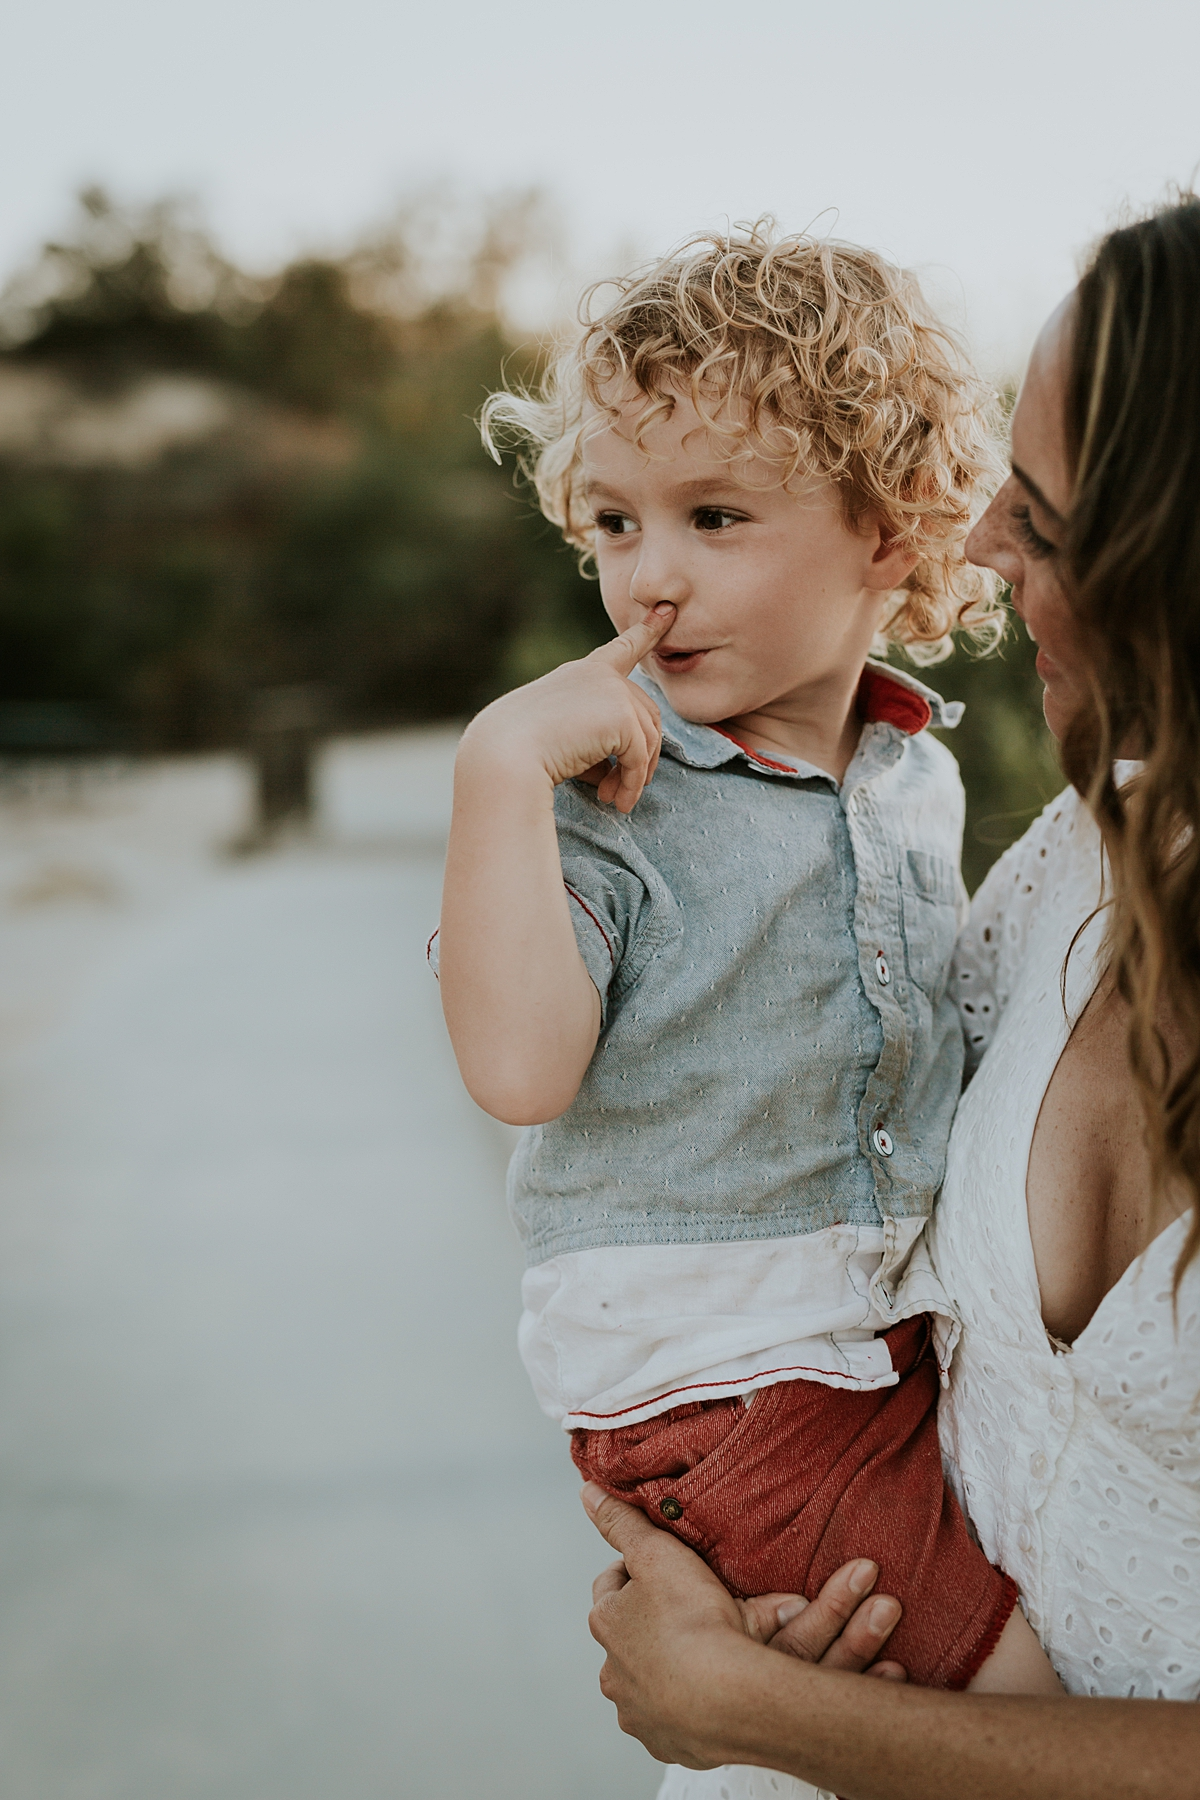 photo by Orange County family photographer Krystil McDowall Photography. photo of mom holding son as he wipes his face during family photo session at Top of the World Laguna Beach California